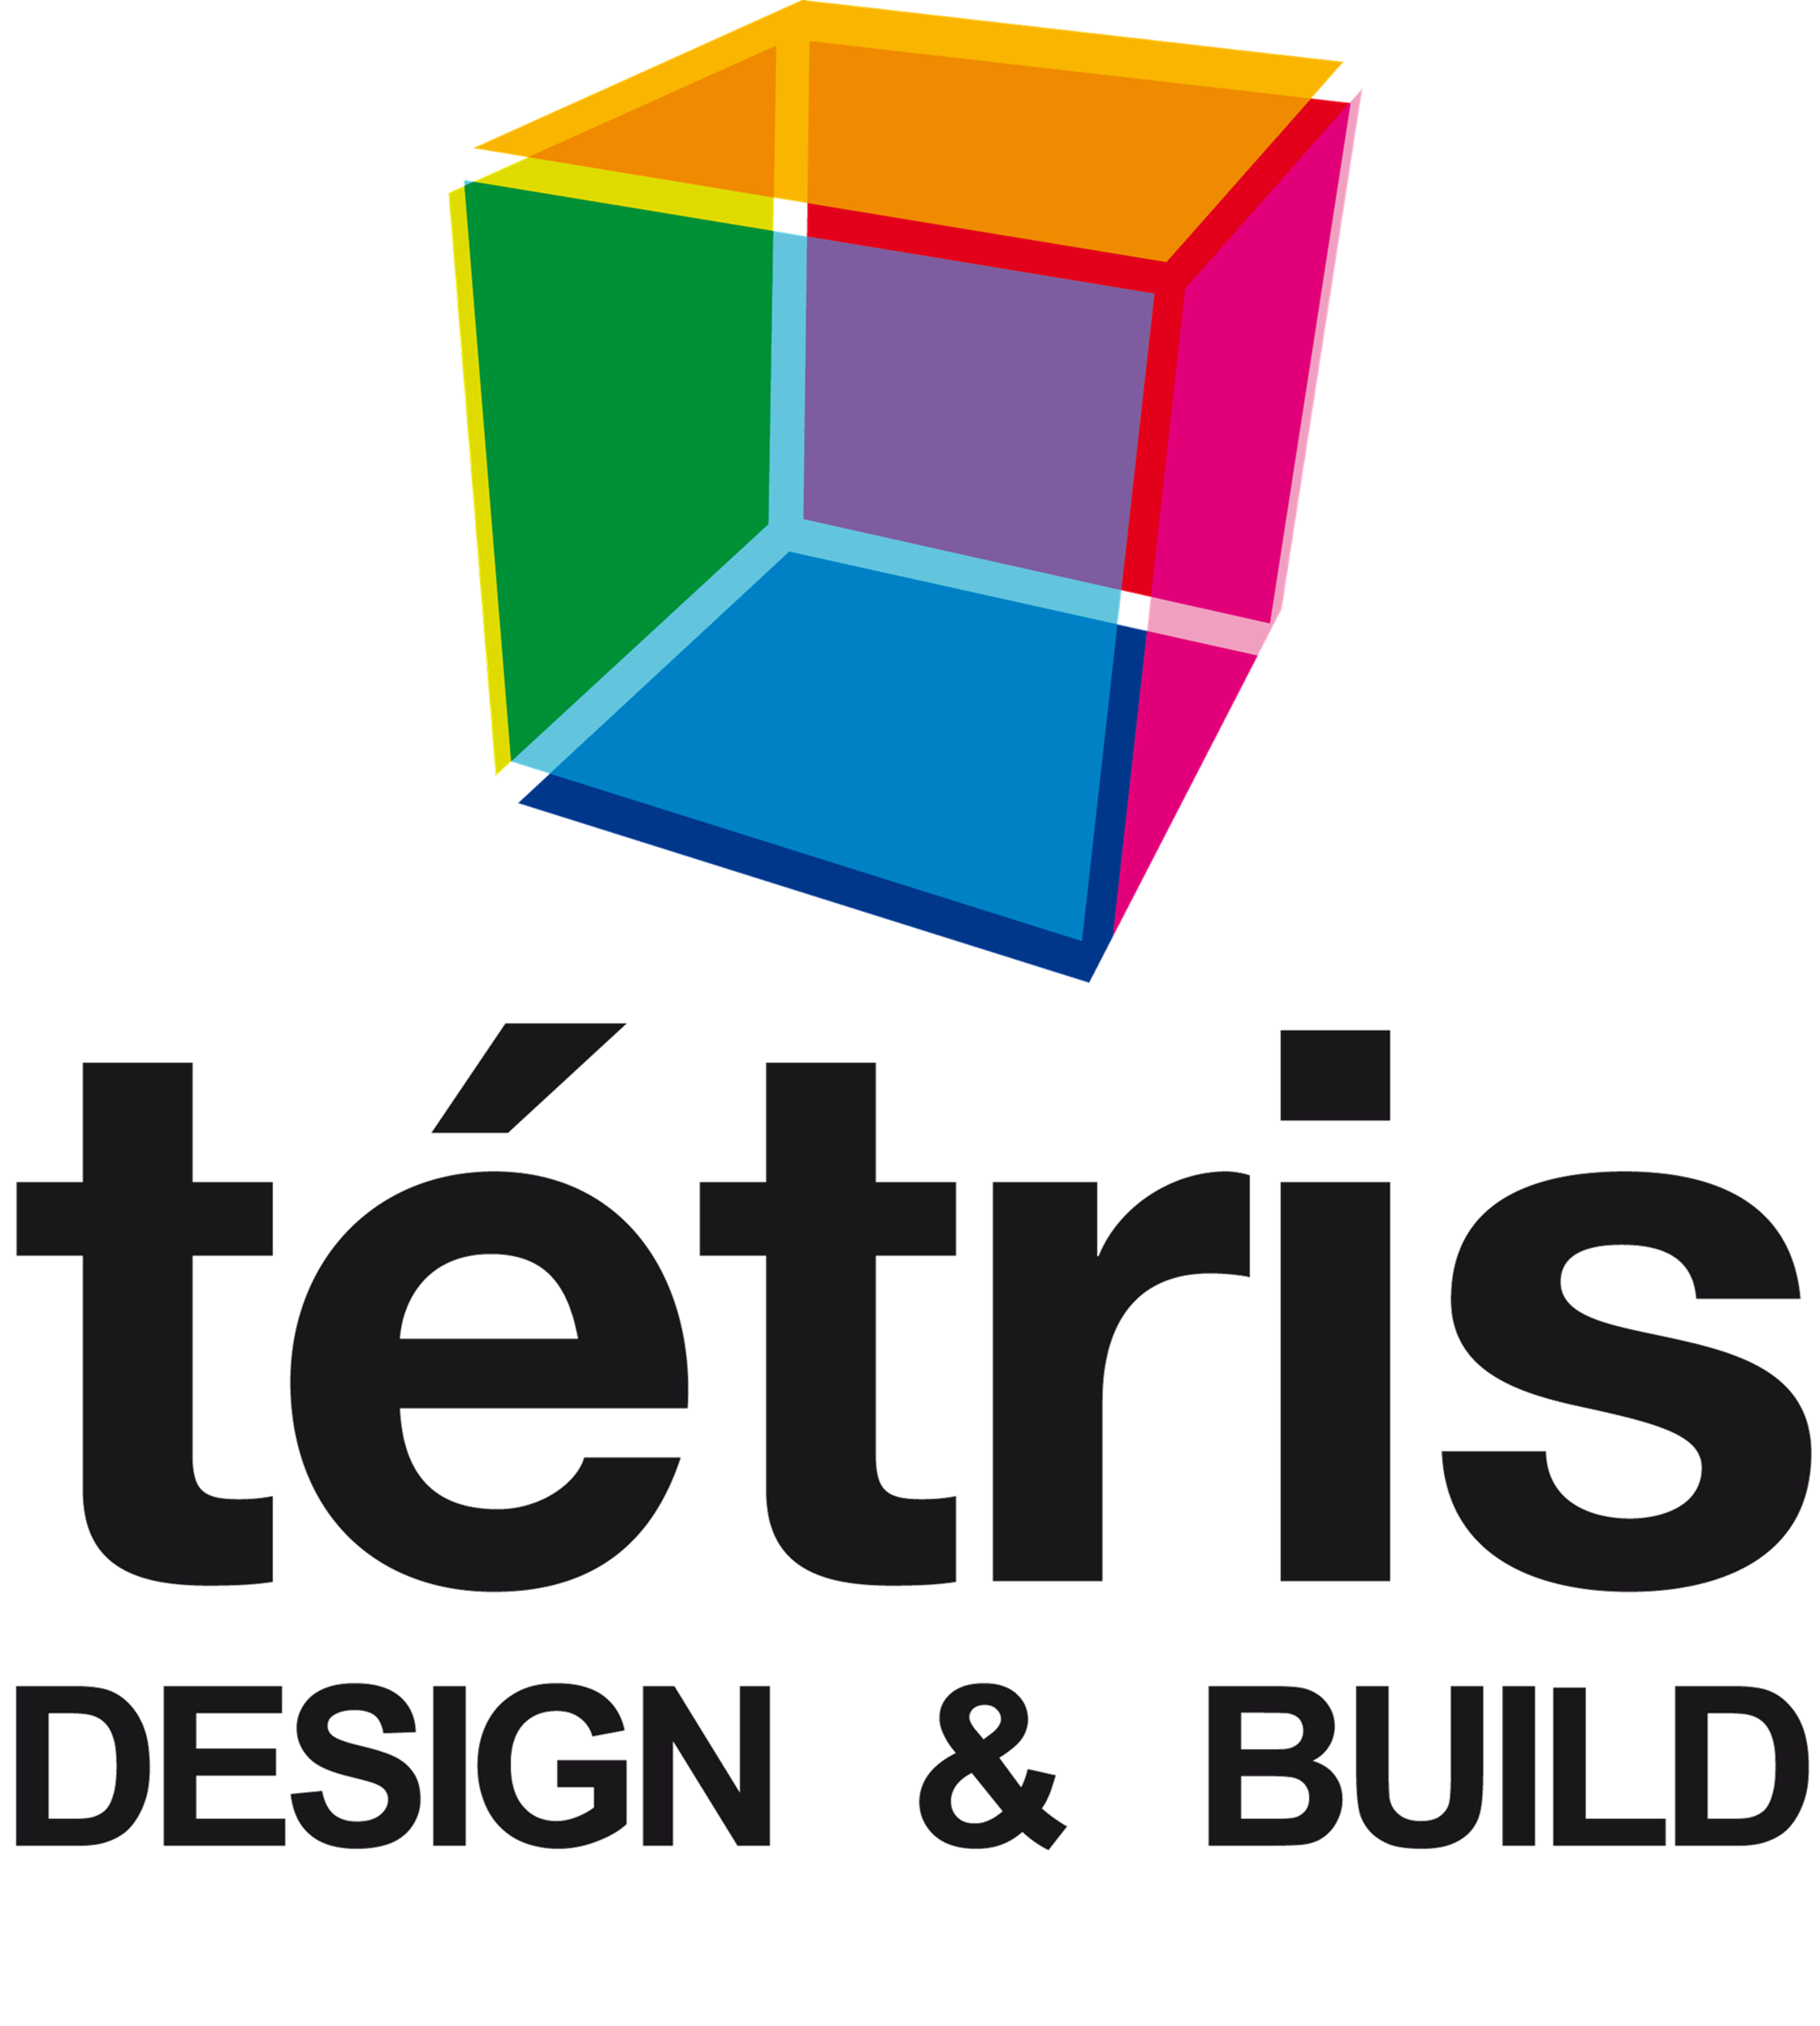 File:Tétris Design & Build.png - Wikimedia Commons